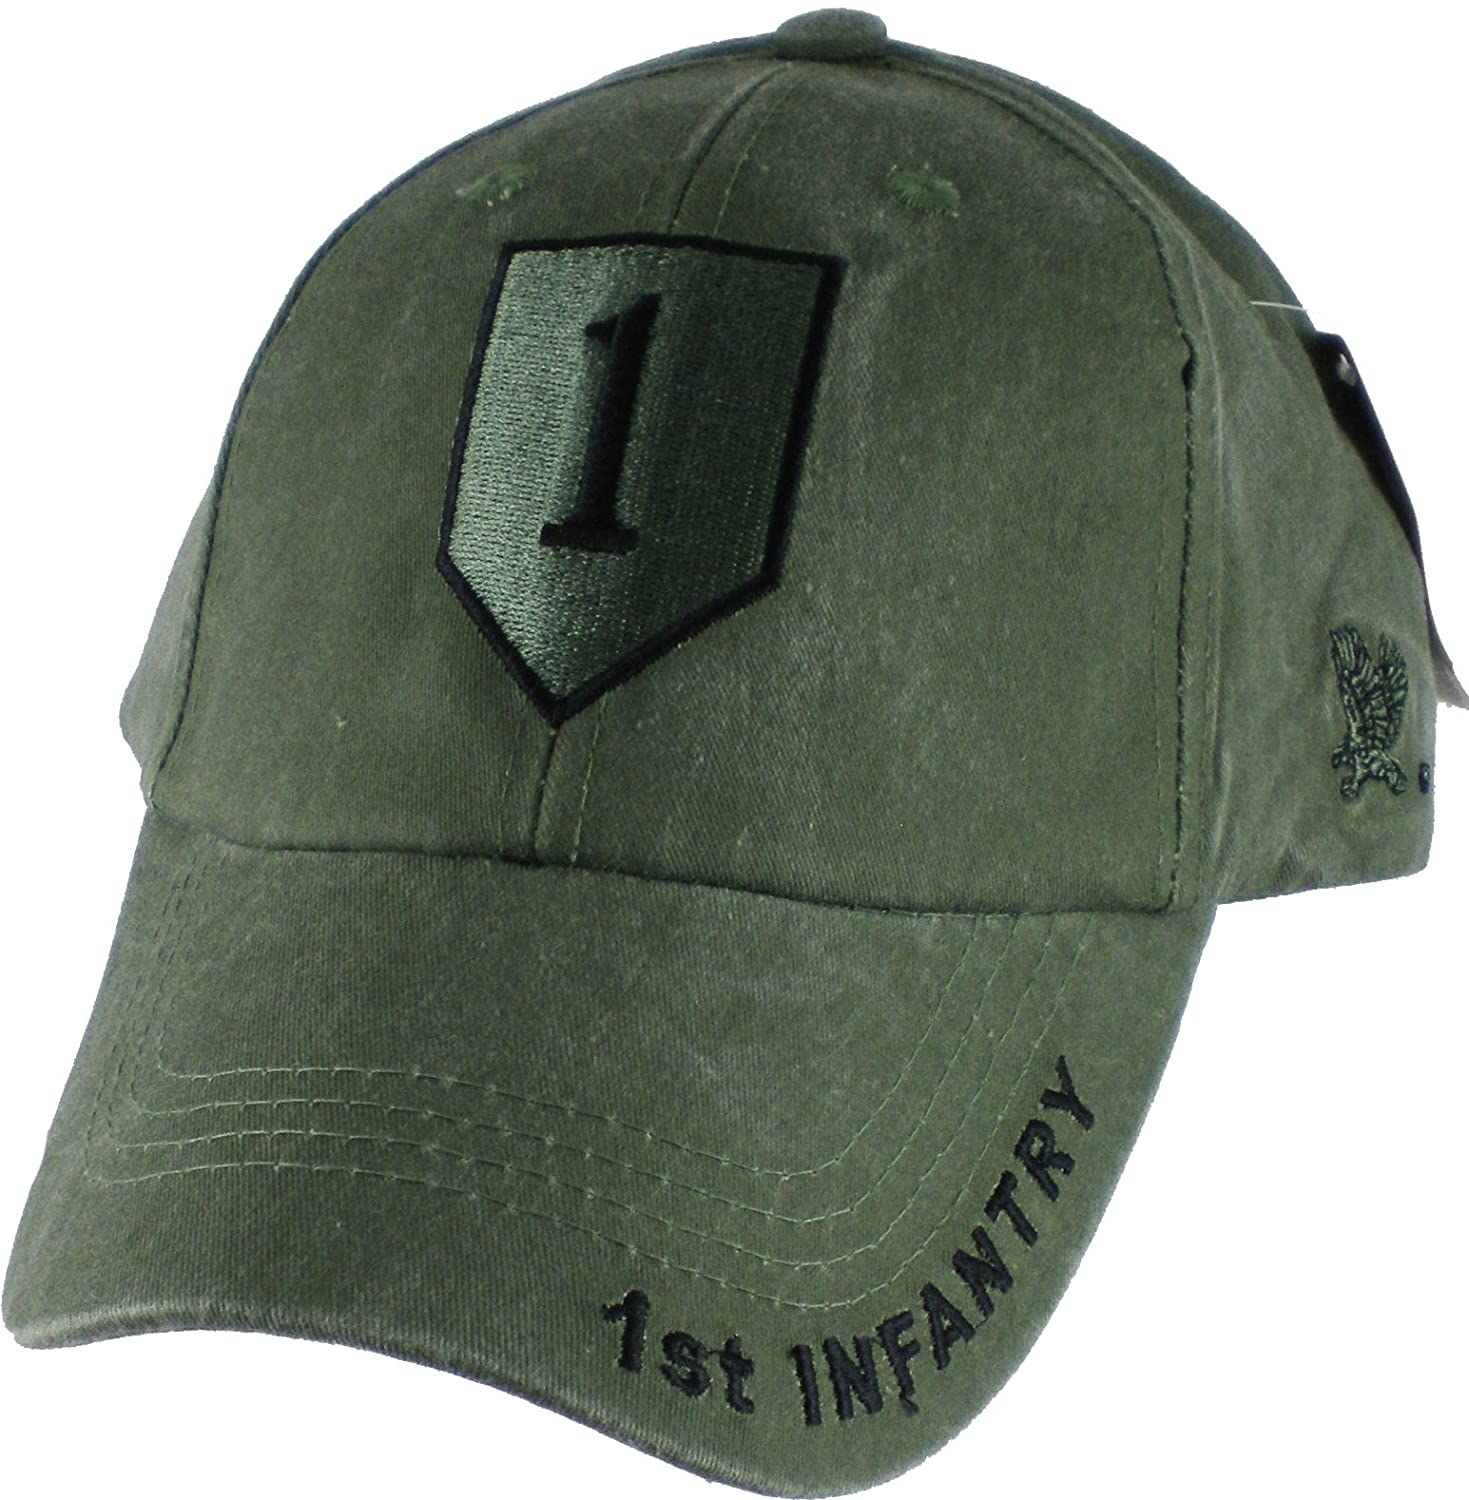 855e5842824 Amazon.com  1st Infantry Division Tonal Color Insignia Adult Cap   Adjustable - Green   Sports   Outdoors